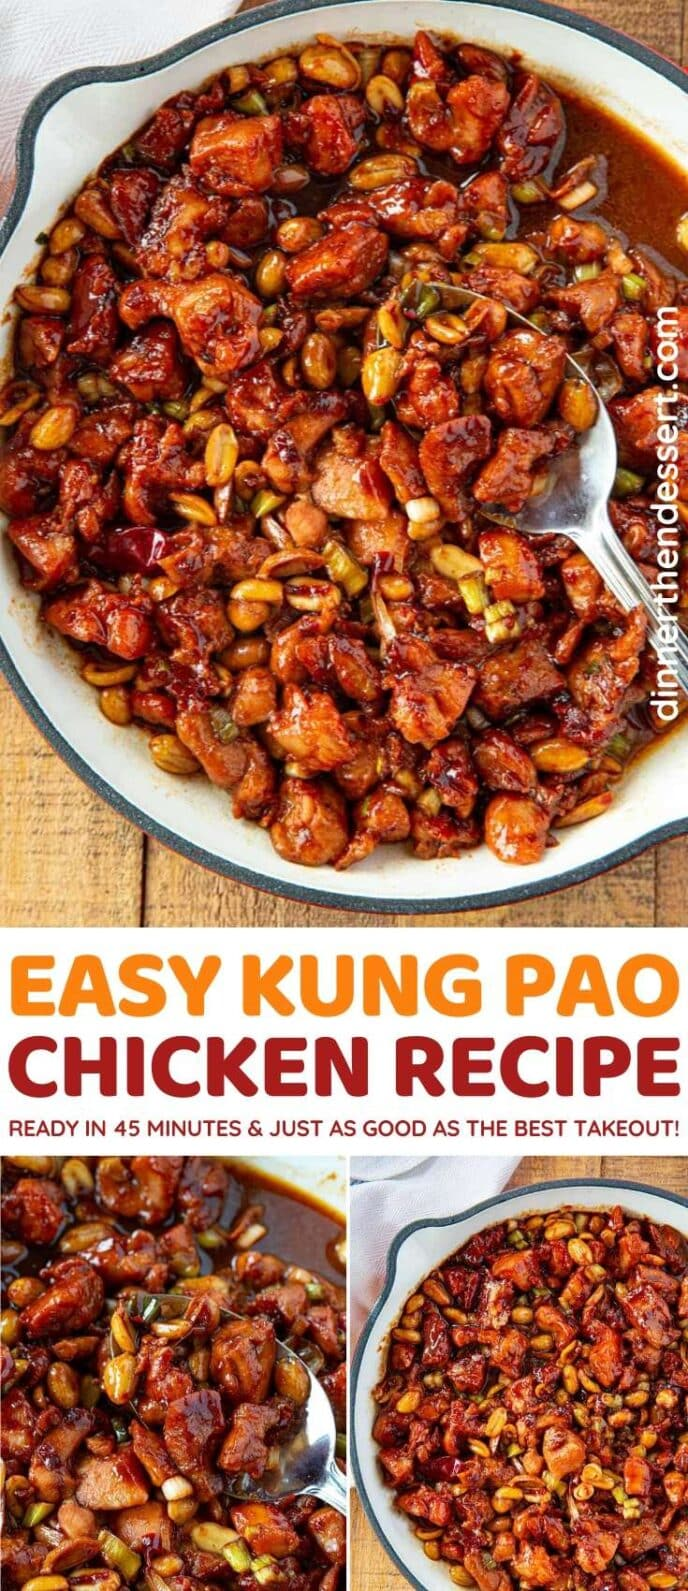 Kung Pao Chicken collage